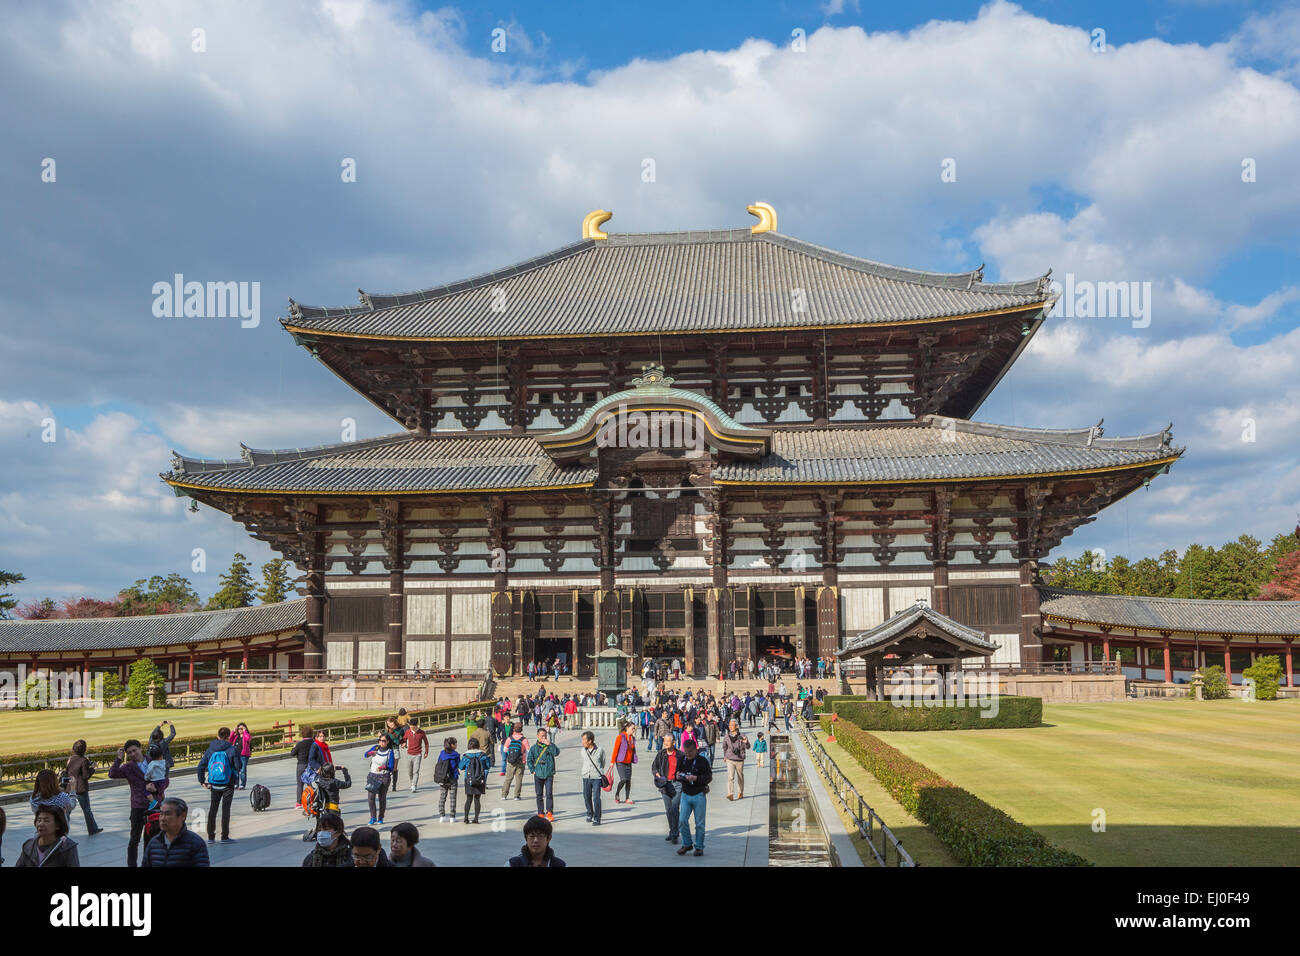 World Heritage, City, Japan, Asia, Kansai, Landscape, Nara, Temple,  Todai Ji, Architecture, Big, Daibutsu, Fall, History, Religio